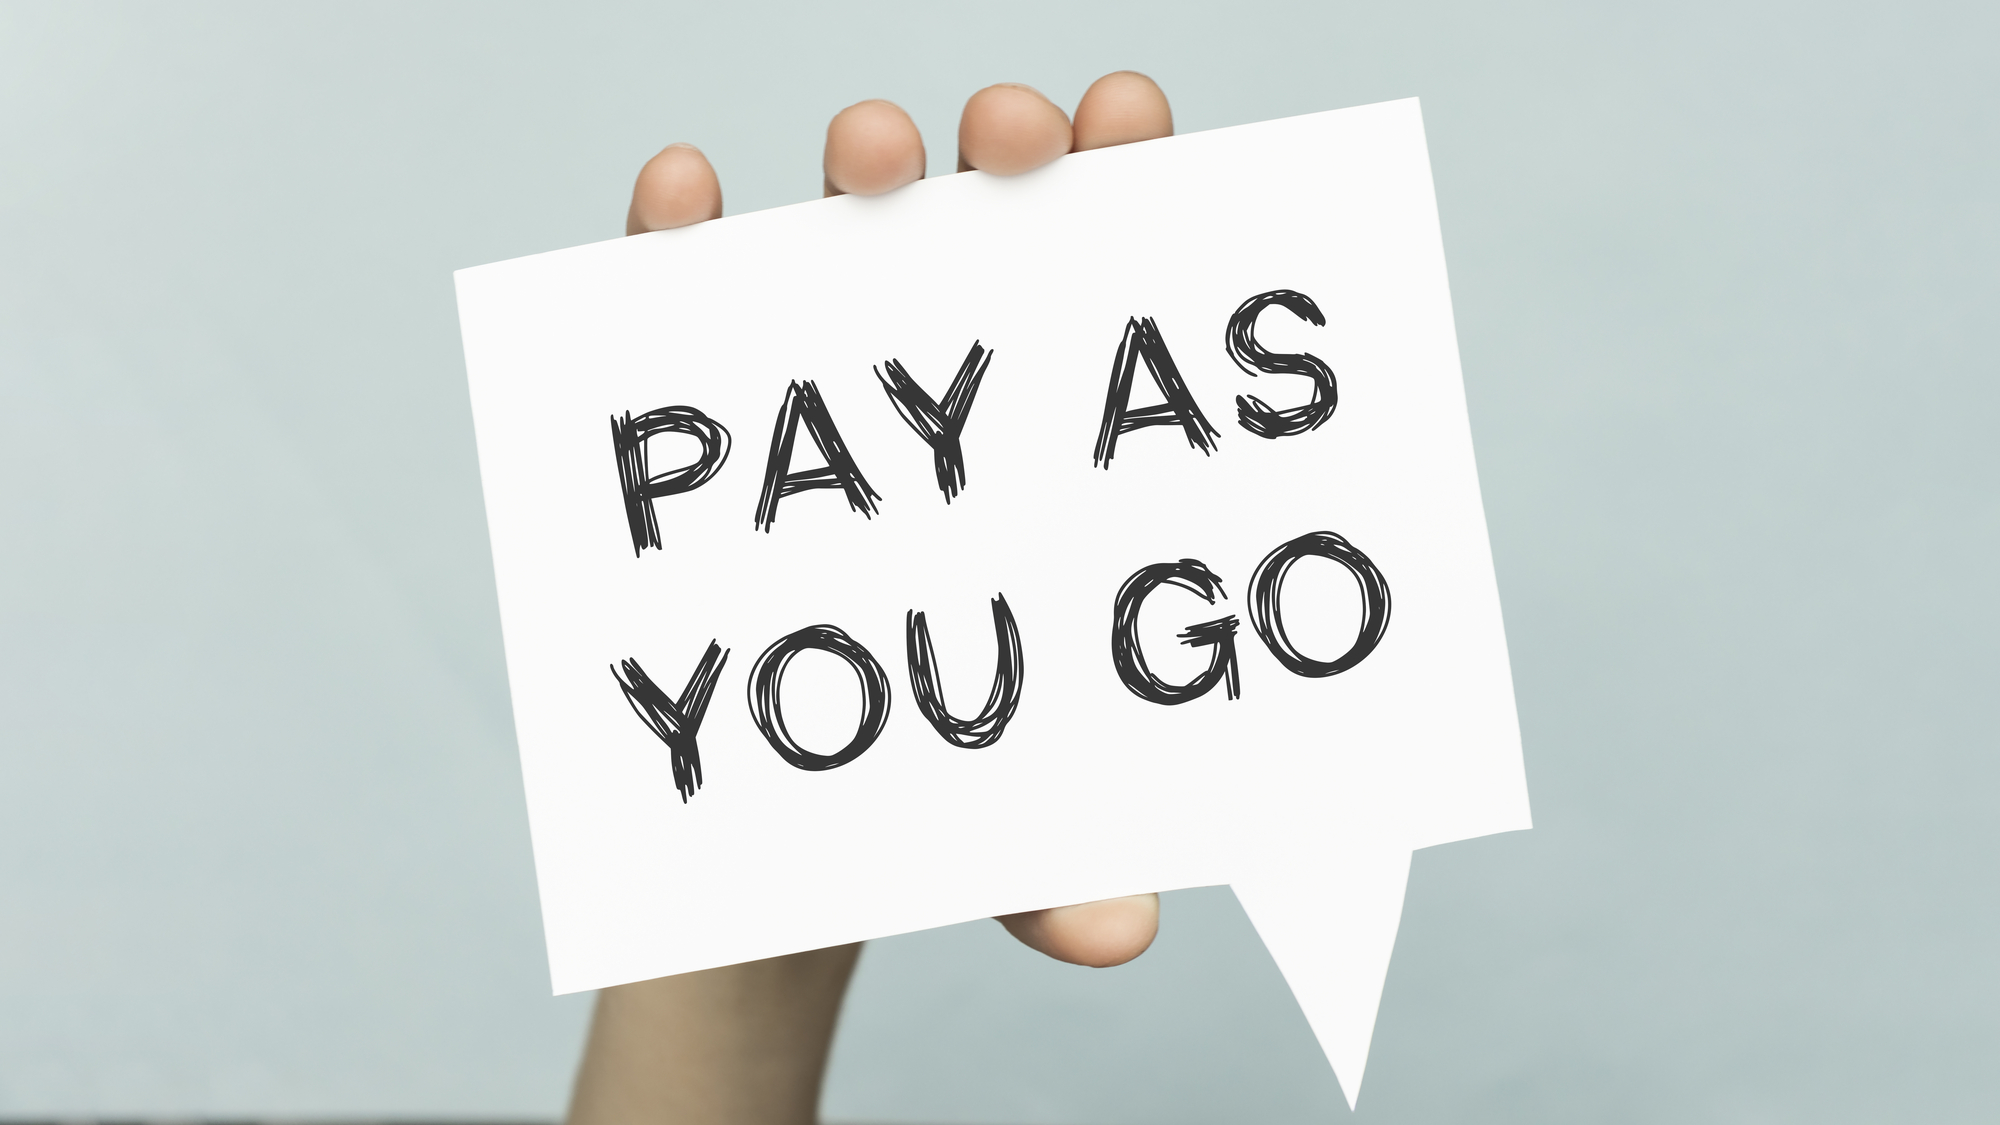 pay as you go plans text